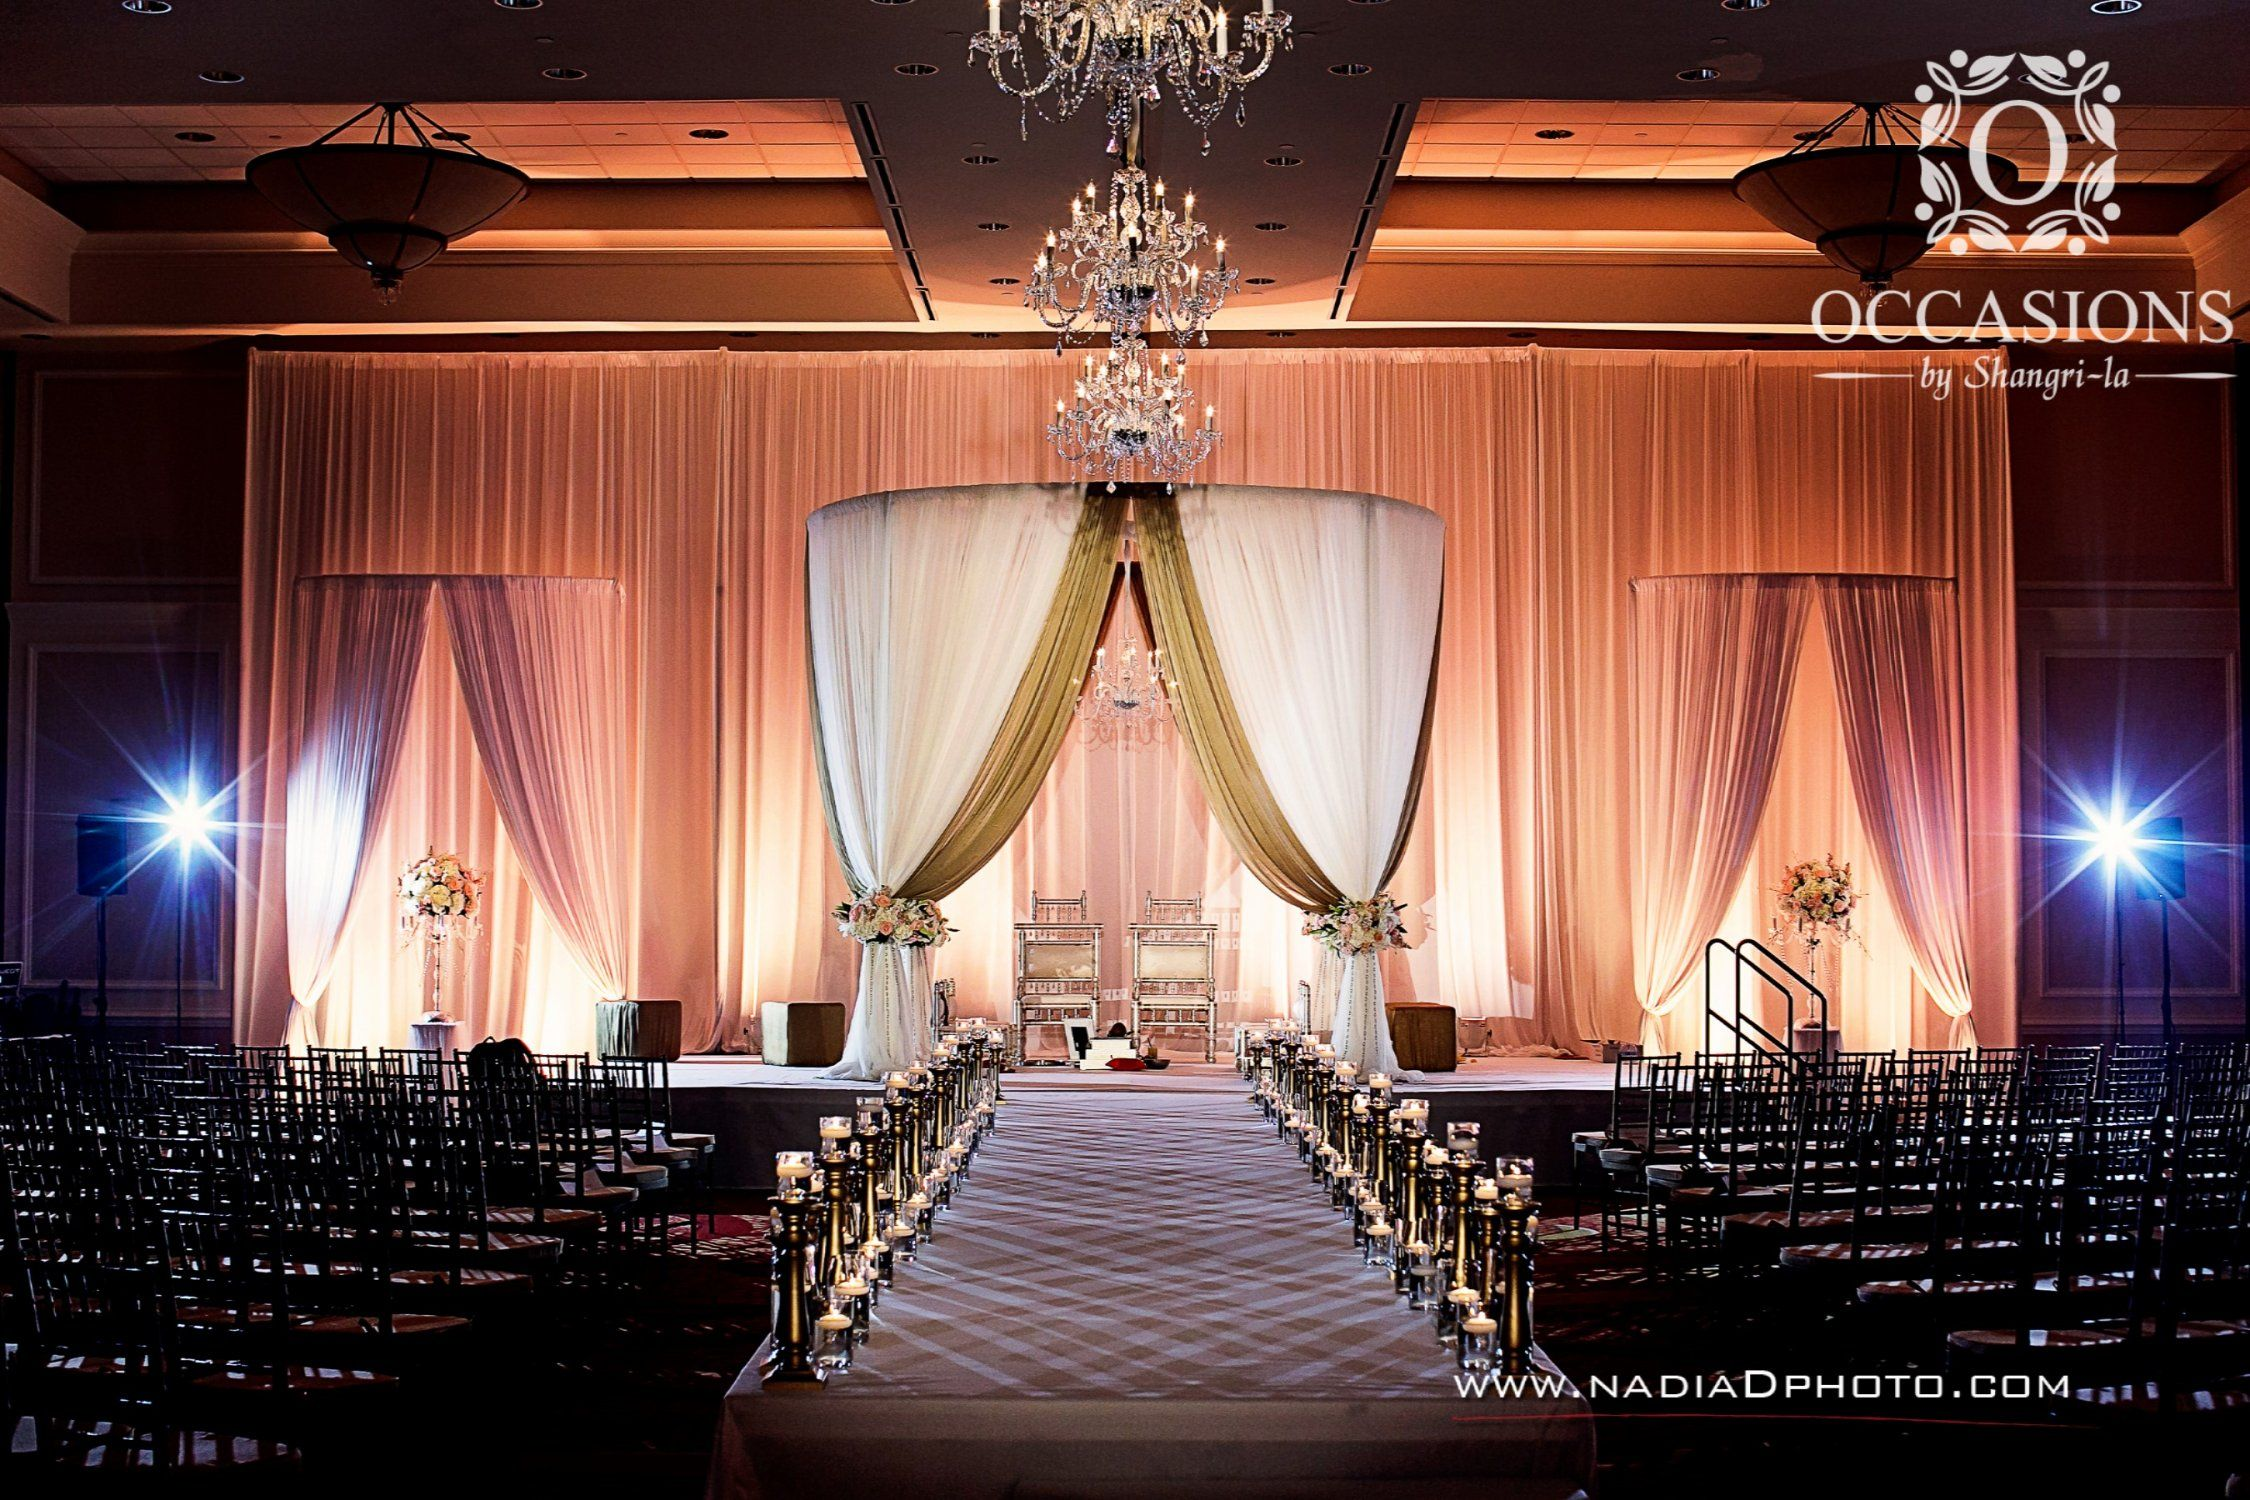 Indian Wedding Decor Company Occasions By Shangri La Provides